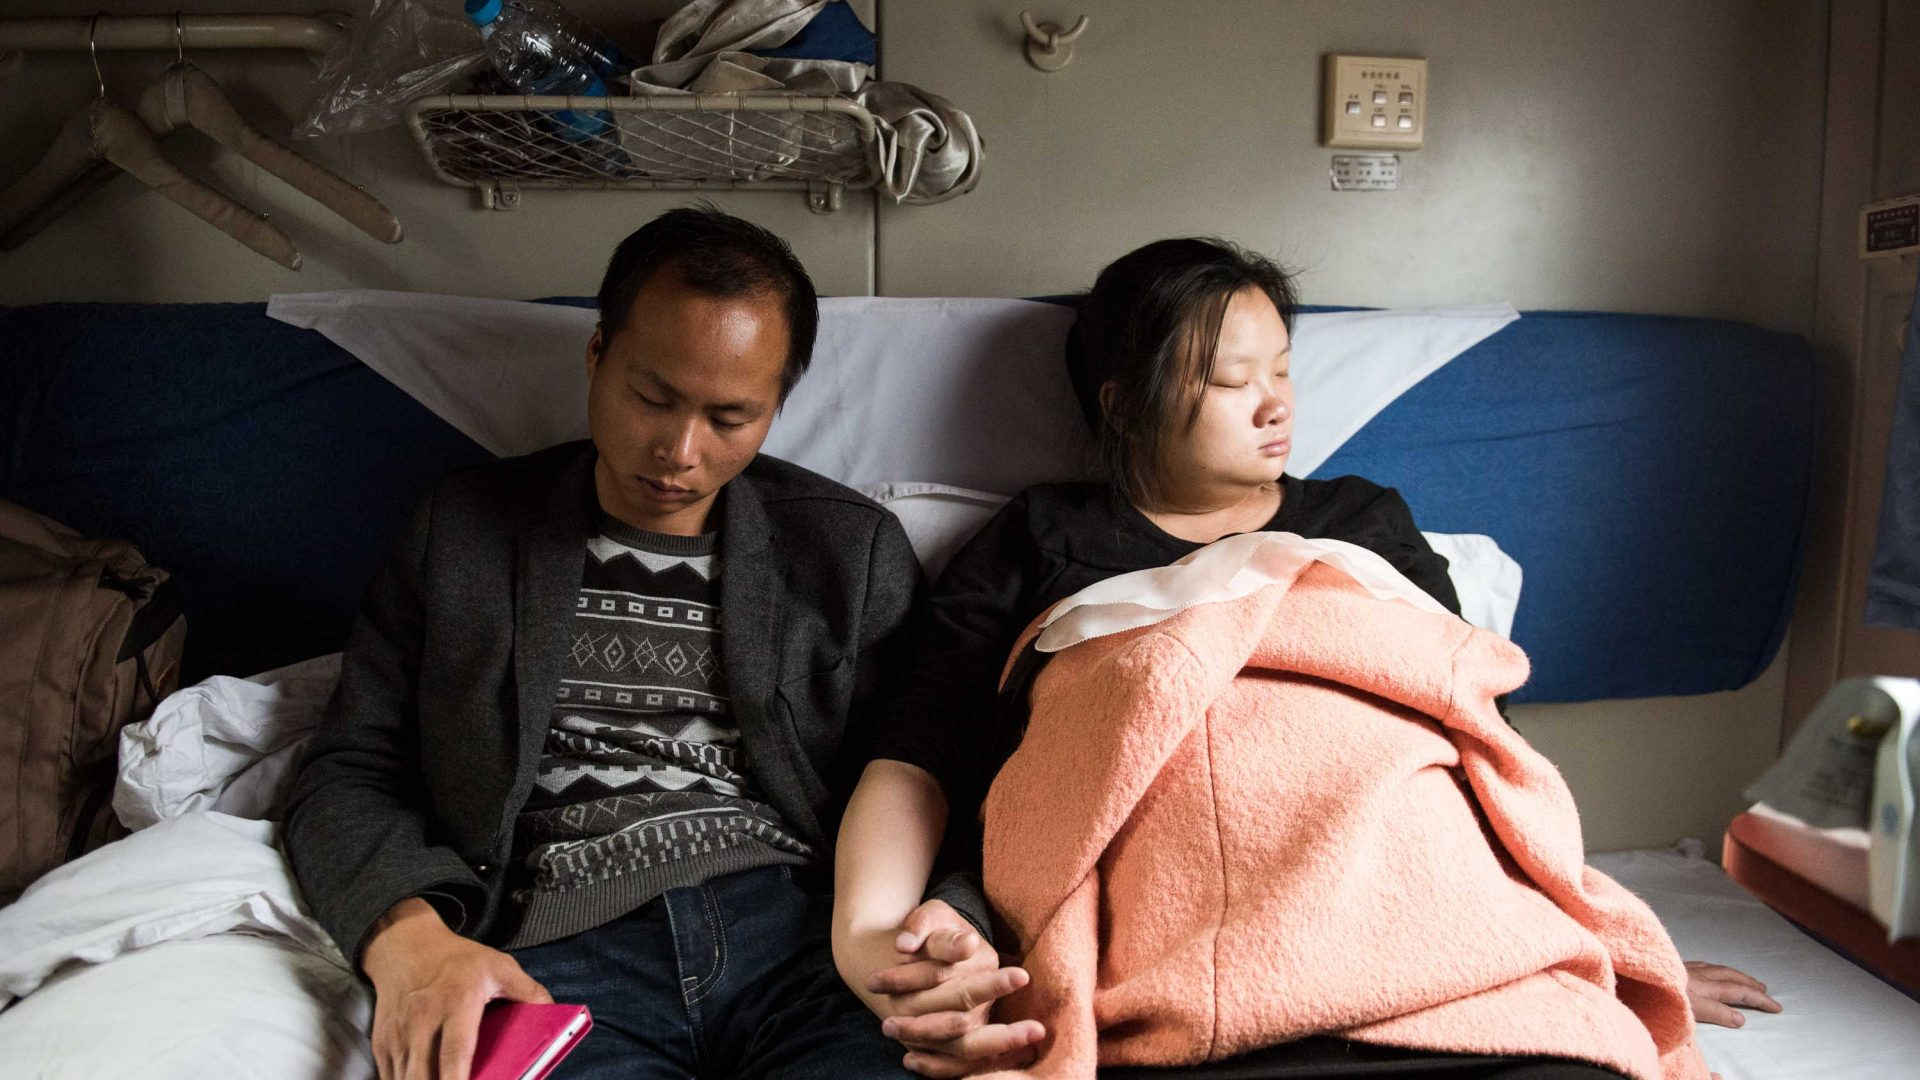 A couple sleep hand-in-hand during a train journey.